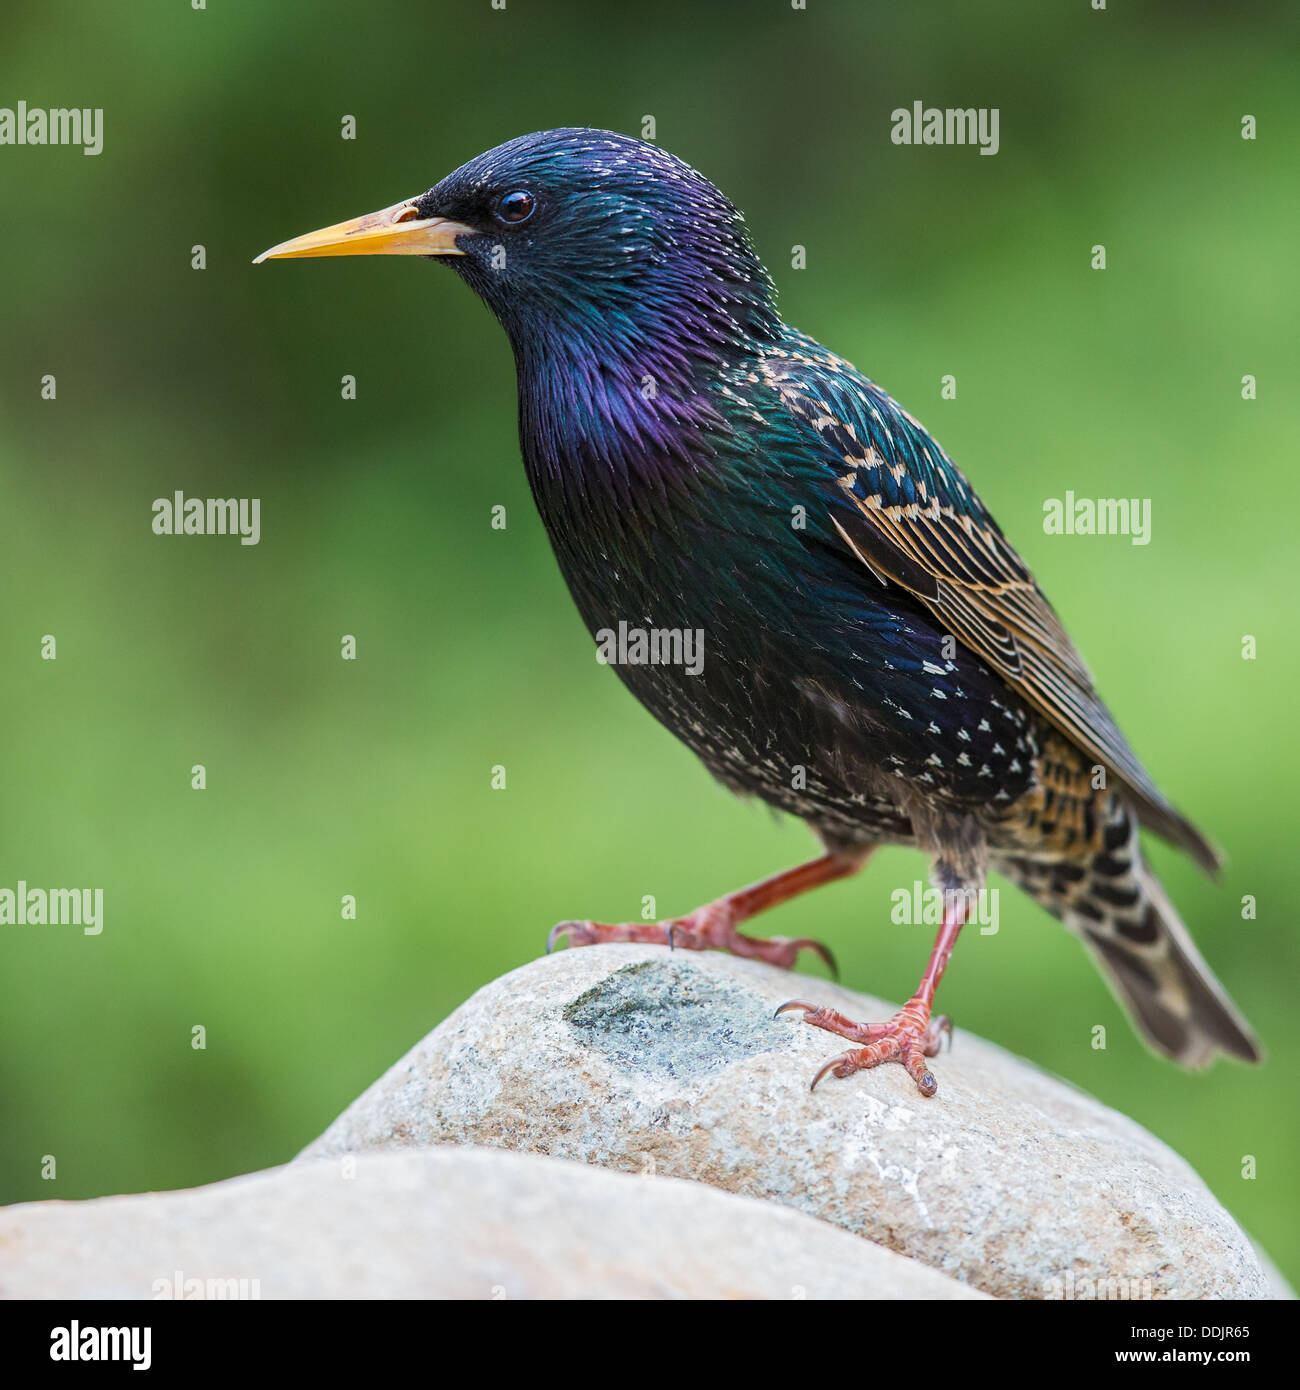 Common starling (sturnus vulgaris) standing on a rock, side view - Stock Image